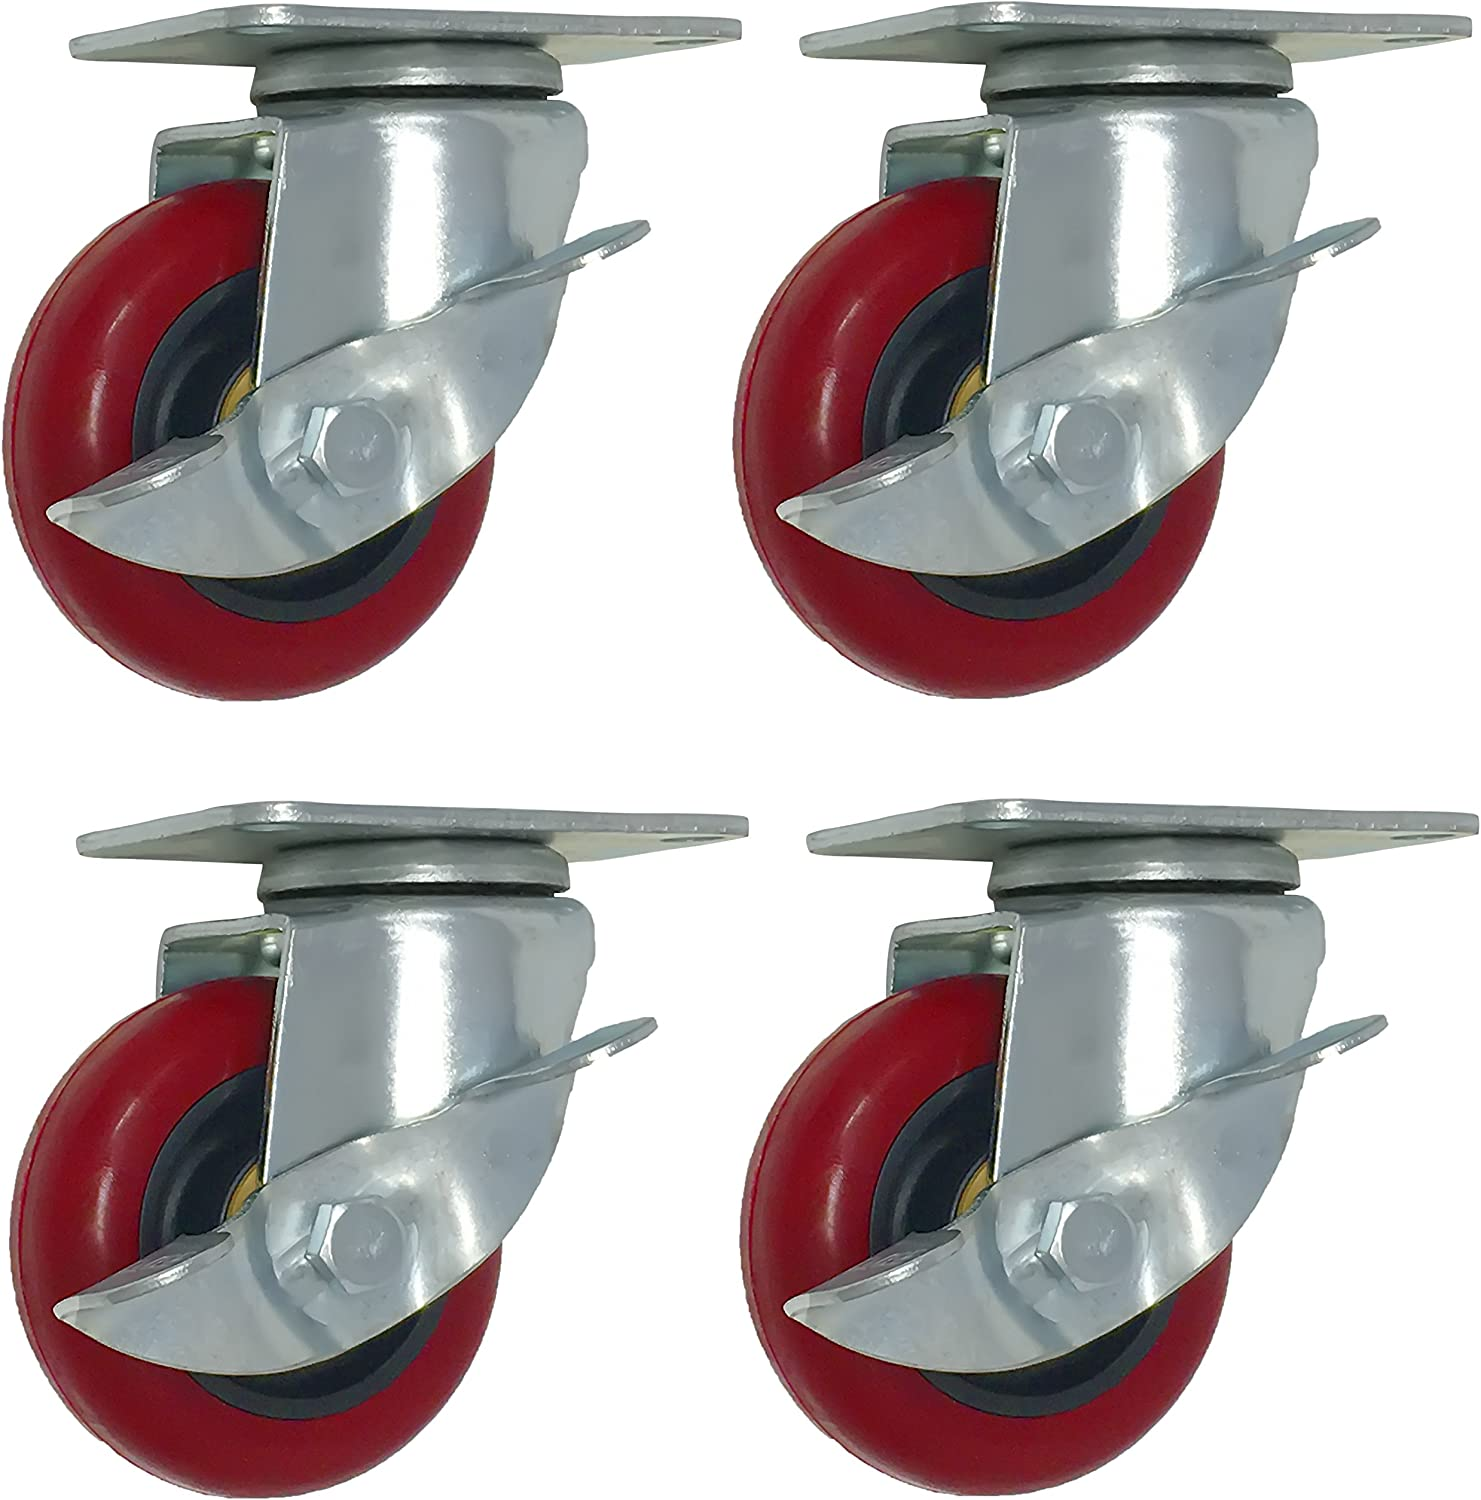 Online Best Service 4 Pack Caster Wheels Swivel Plate With Brake On Red Polyuret